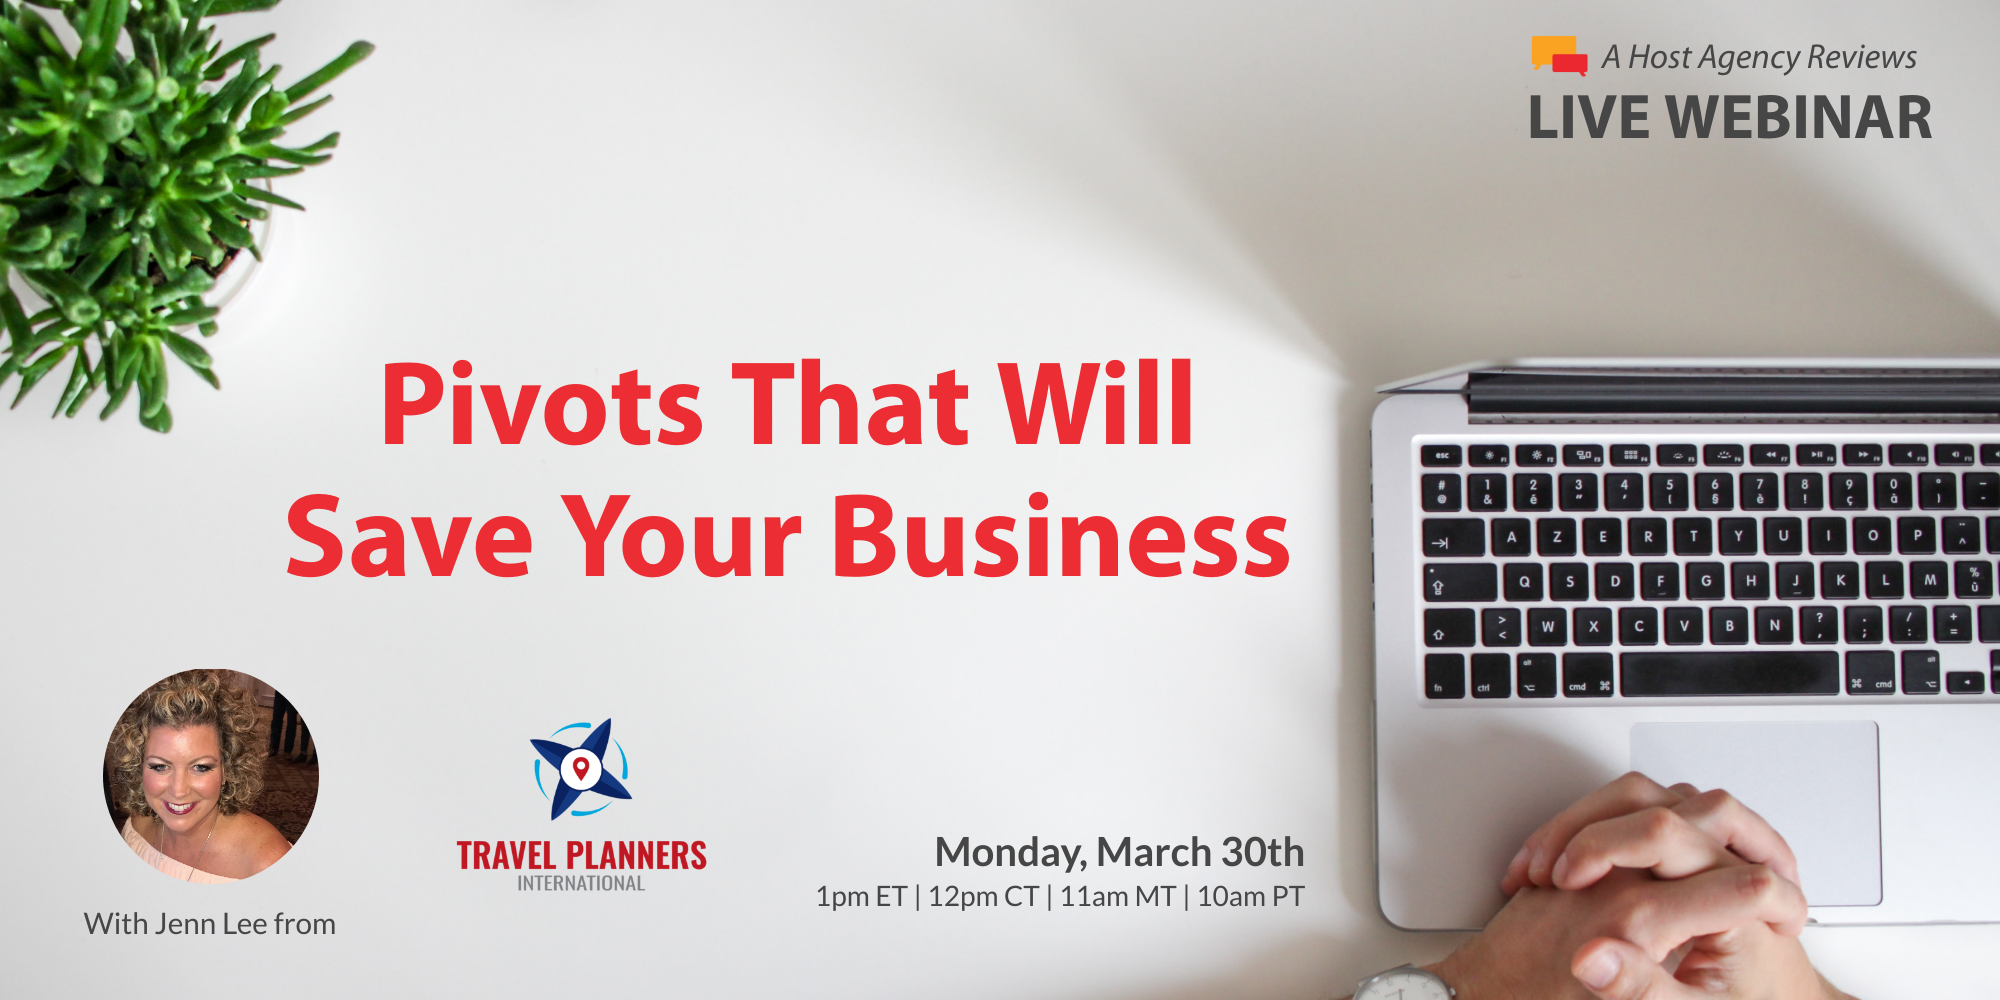 Pivots That Will Save Your Business